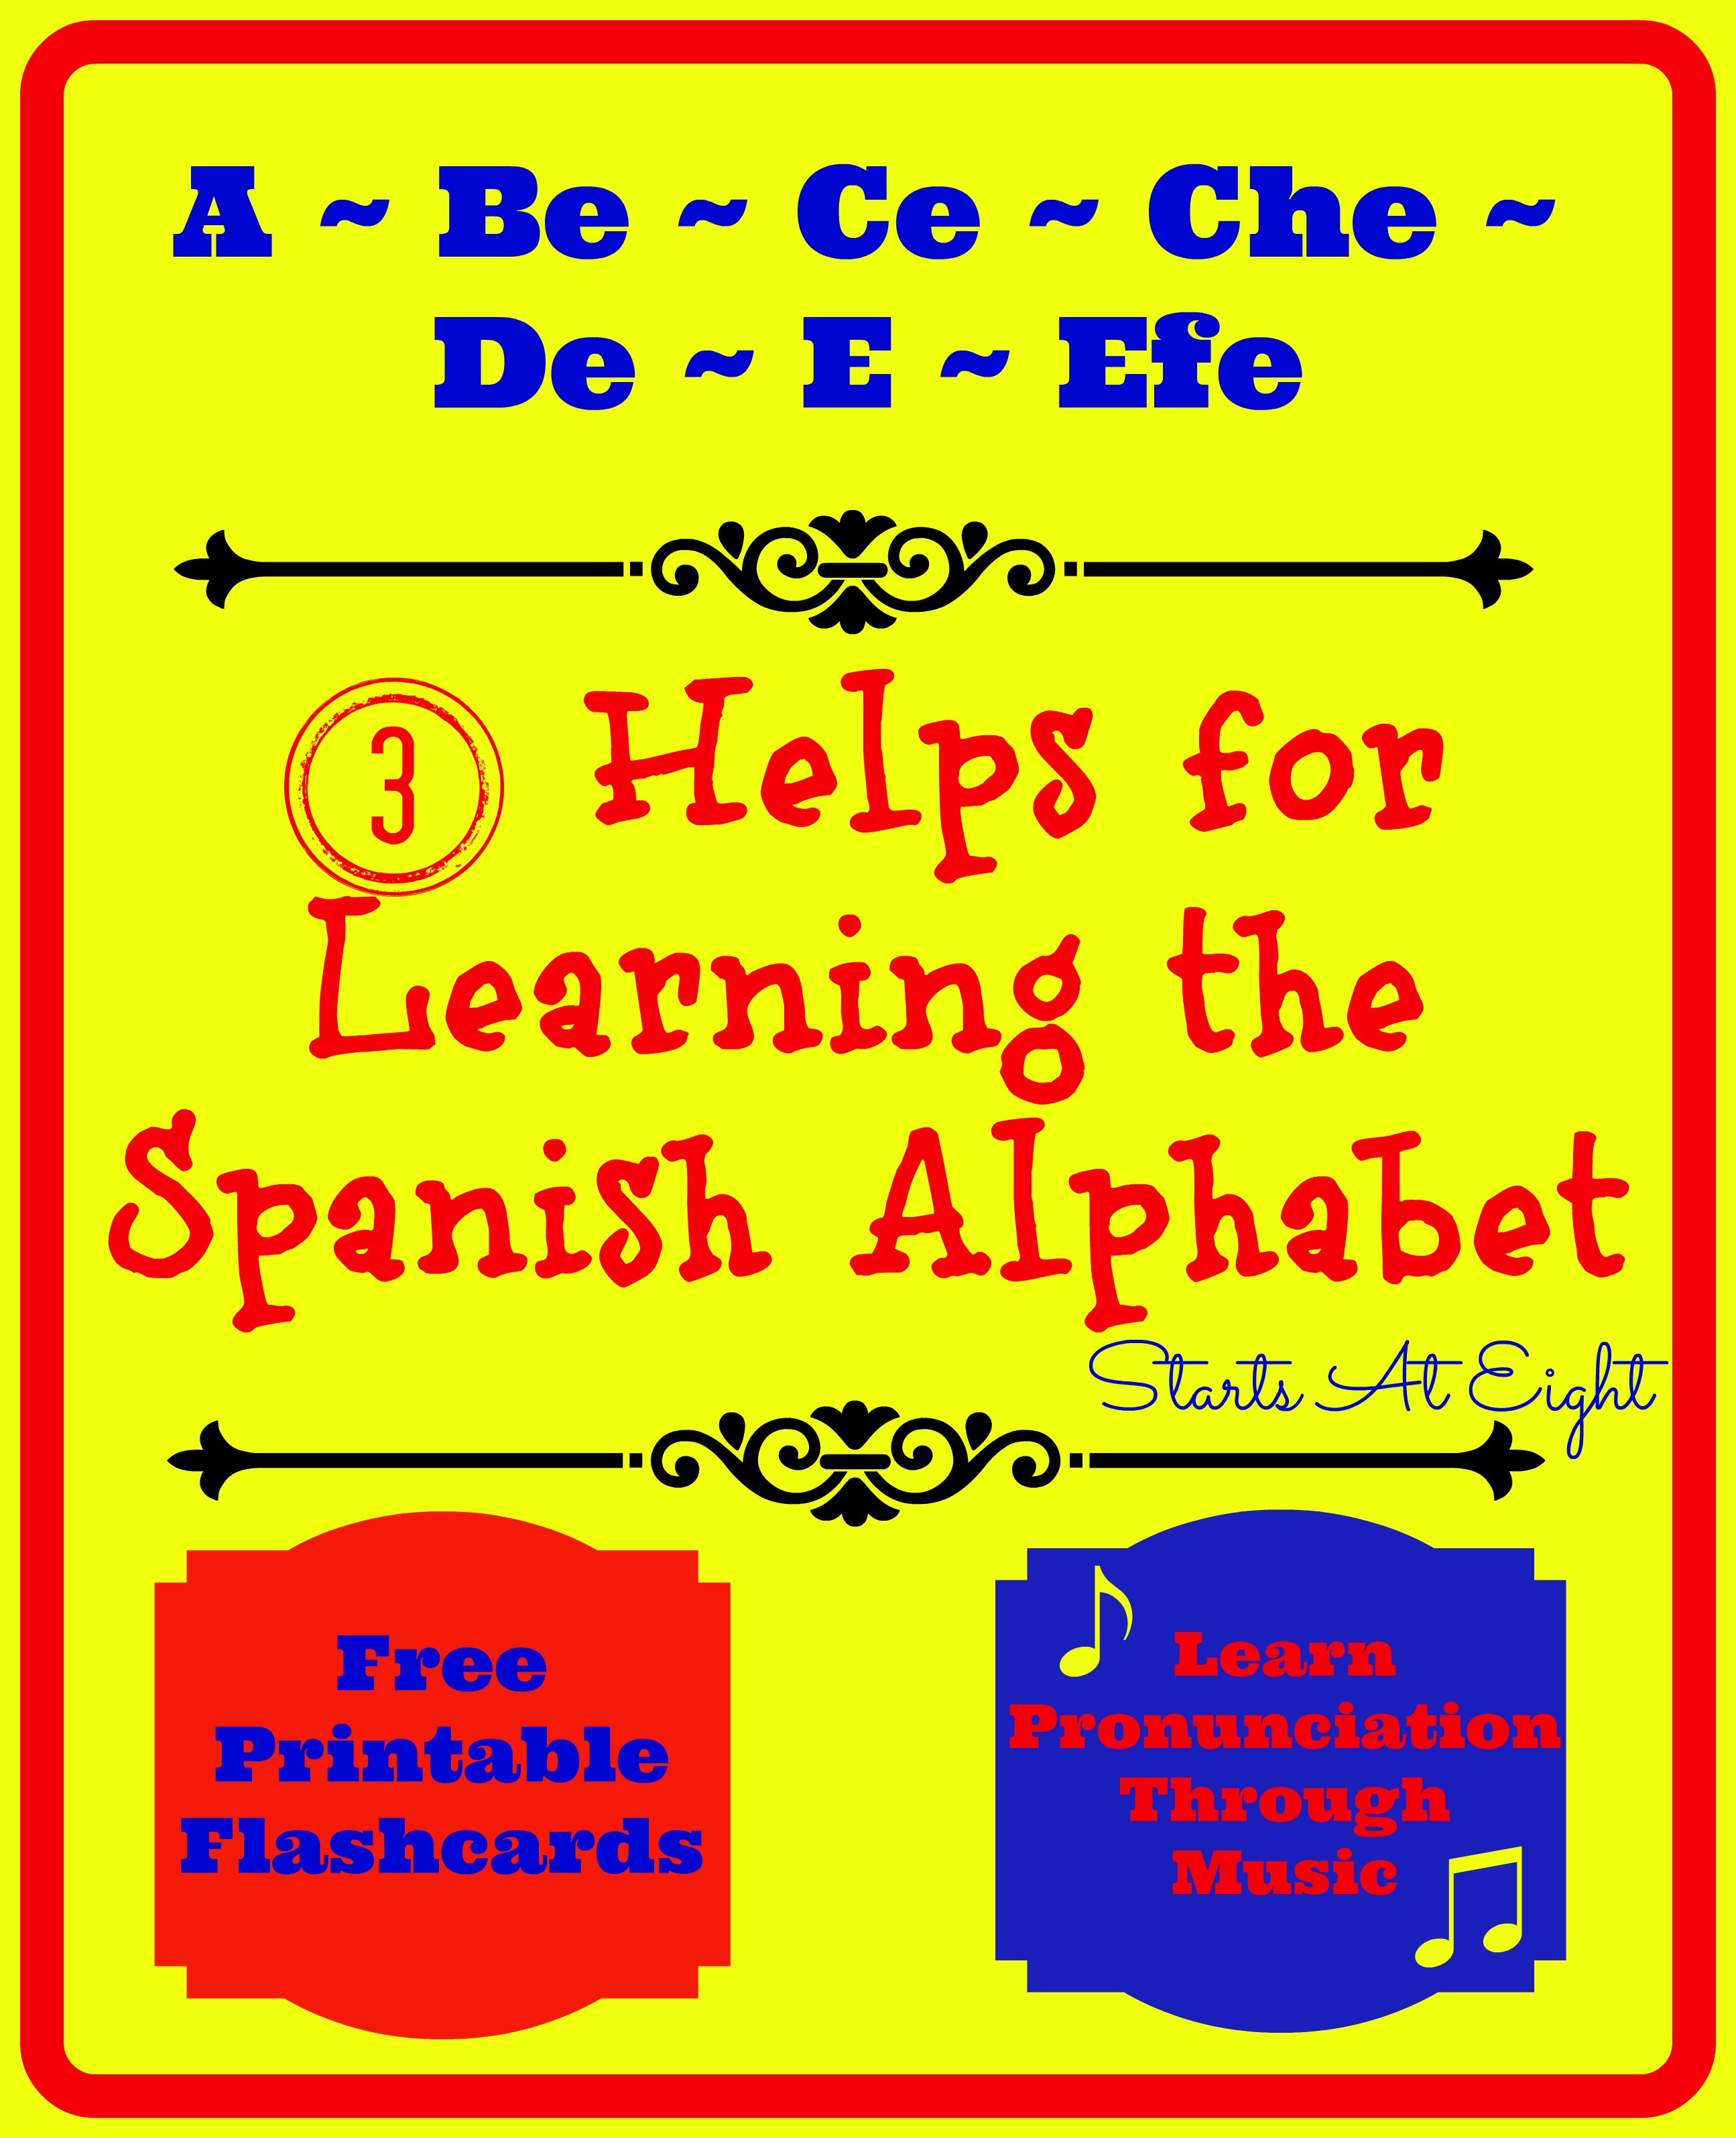 3 Helps For Learning The Spanish Alphabet - Startsateight - Spanish Alphabet Flashcards Free Printable